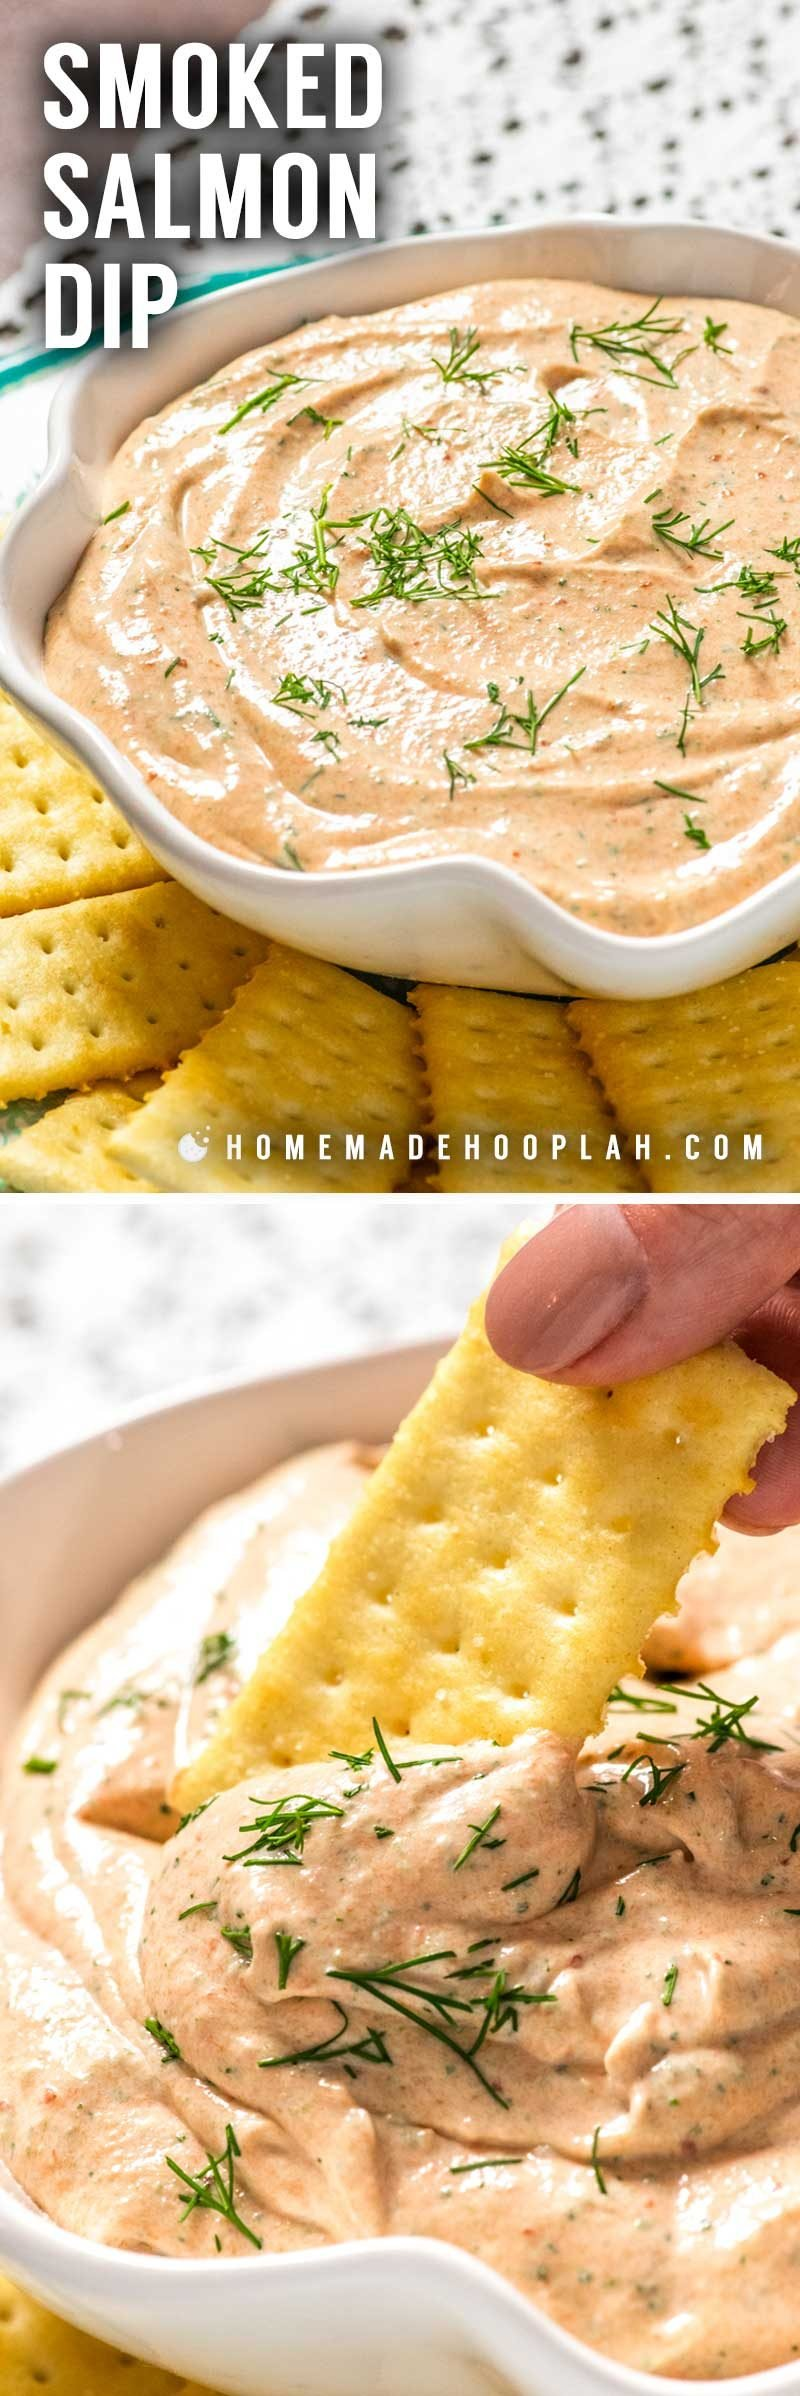 Smoked Salmon Dip! Smooth and creamy smoked salmon dip has all the flavor of smoked salmon with hints of lemon, dill, and capers. Great spread on bagels or to dip with crackers. | HomemadeHooplah.com